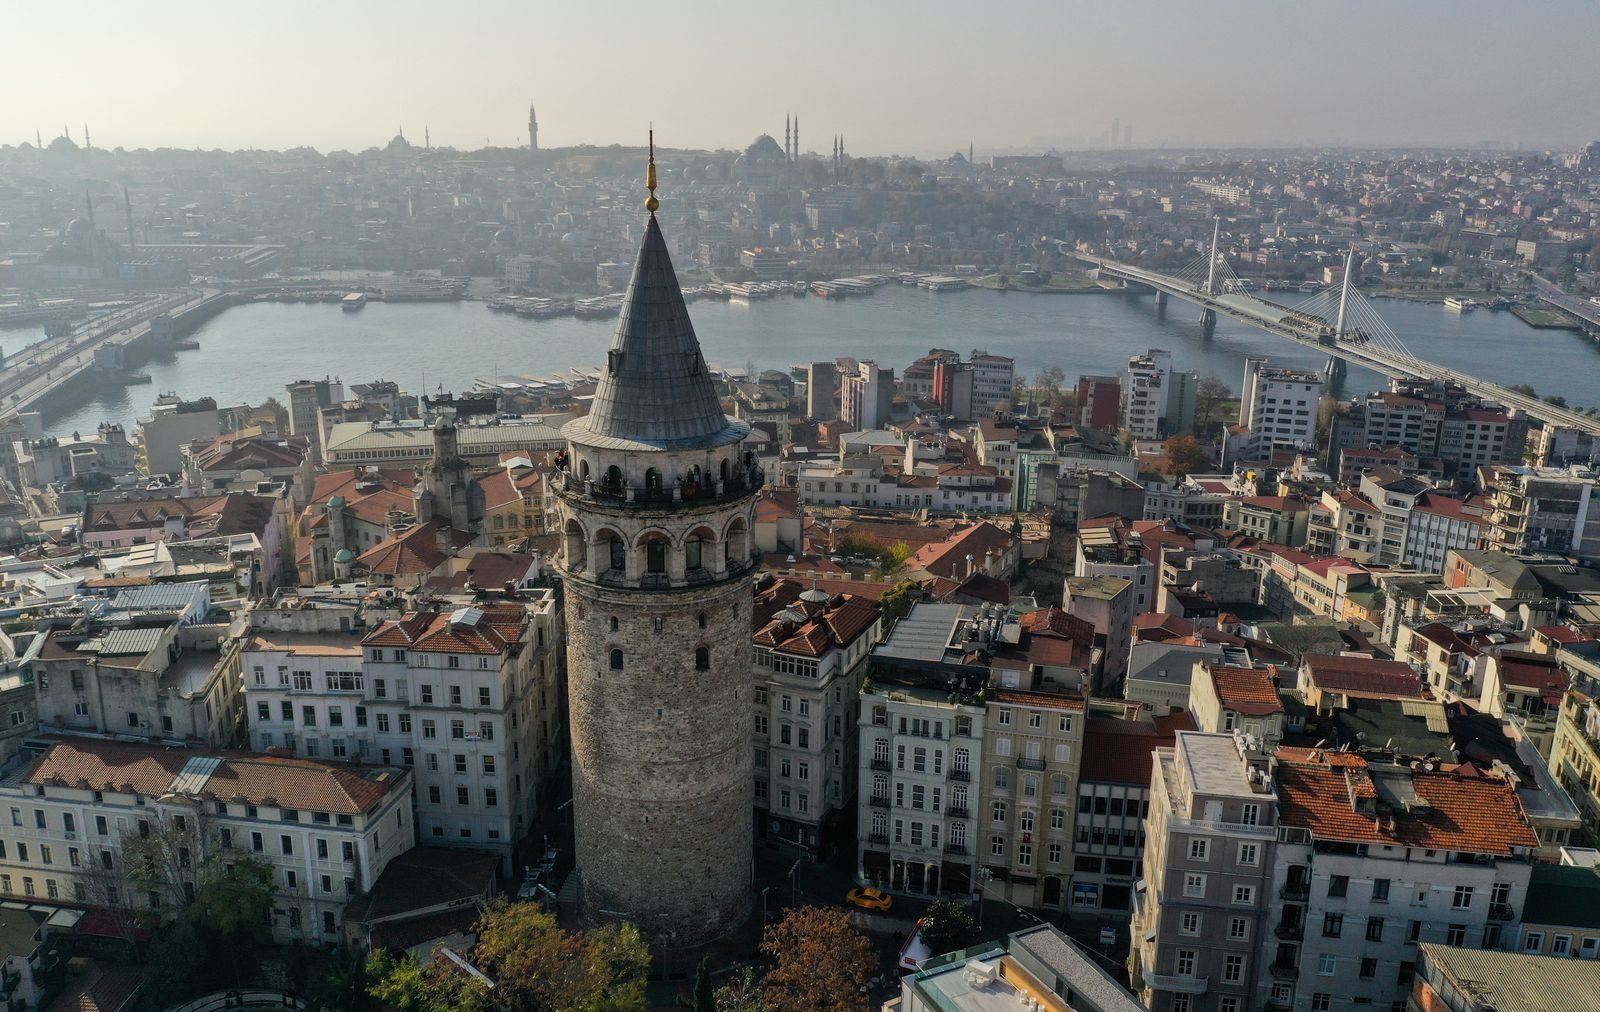 Drone footage reveals historical Glata Tower during a two-day curfew which was imposed to prevent the spread of the coronavirus disease (COVID-19), in Istanbul